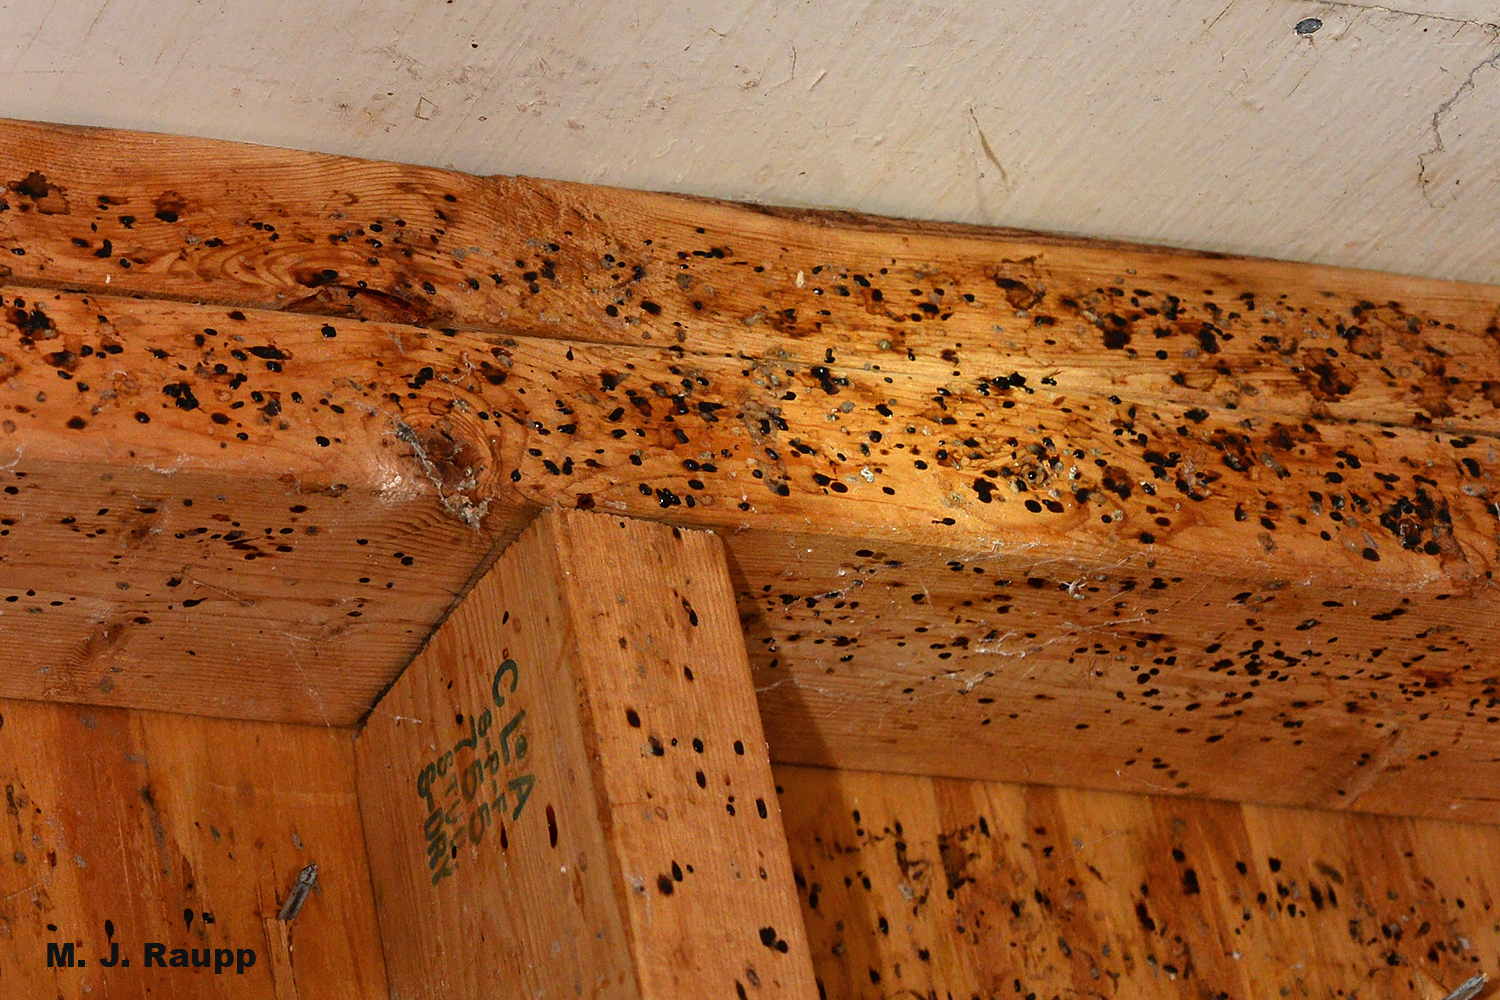 Fecal spots left by camel crickets create a foul ambiance to the interior of a tool shed.